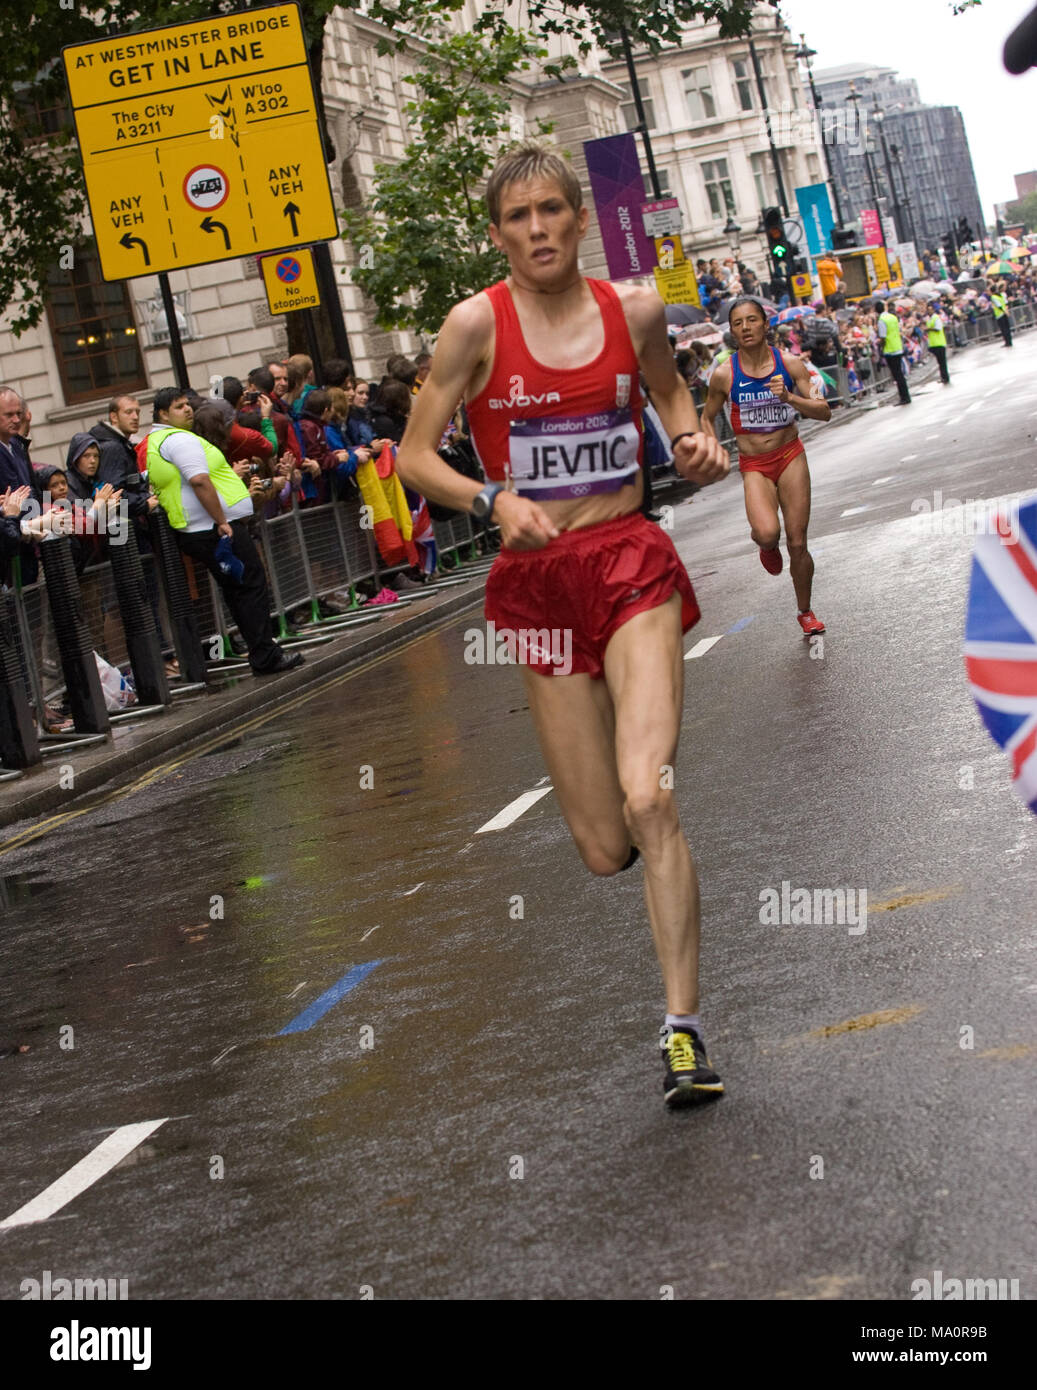 Olympic Games - London 2012 - Women's Marathon Race - Stock Image